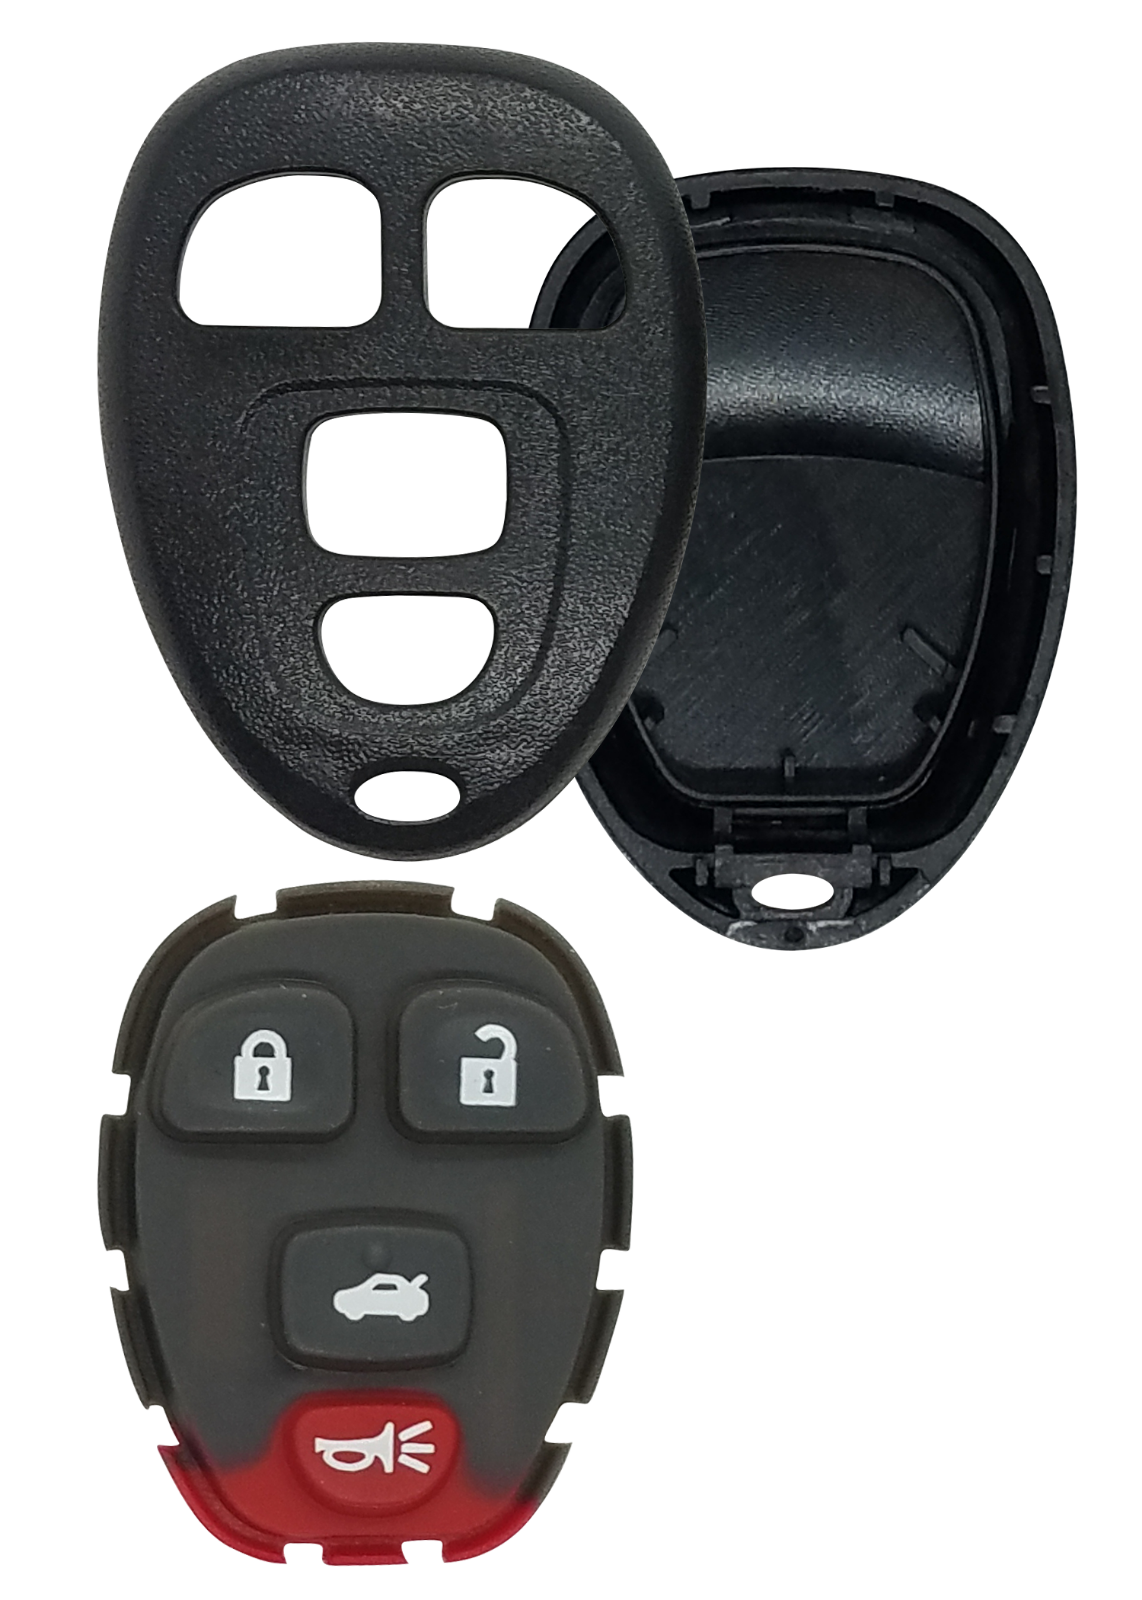 NEW CASE & BUTTON for GMC CHEVROLET & PONTIAC REMOTE KEY FOB for FCC KOBGT04A